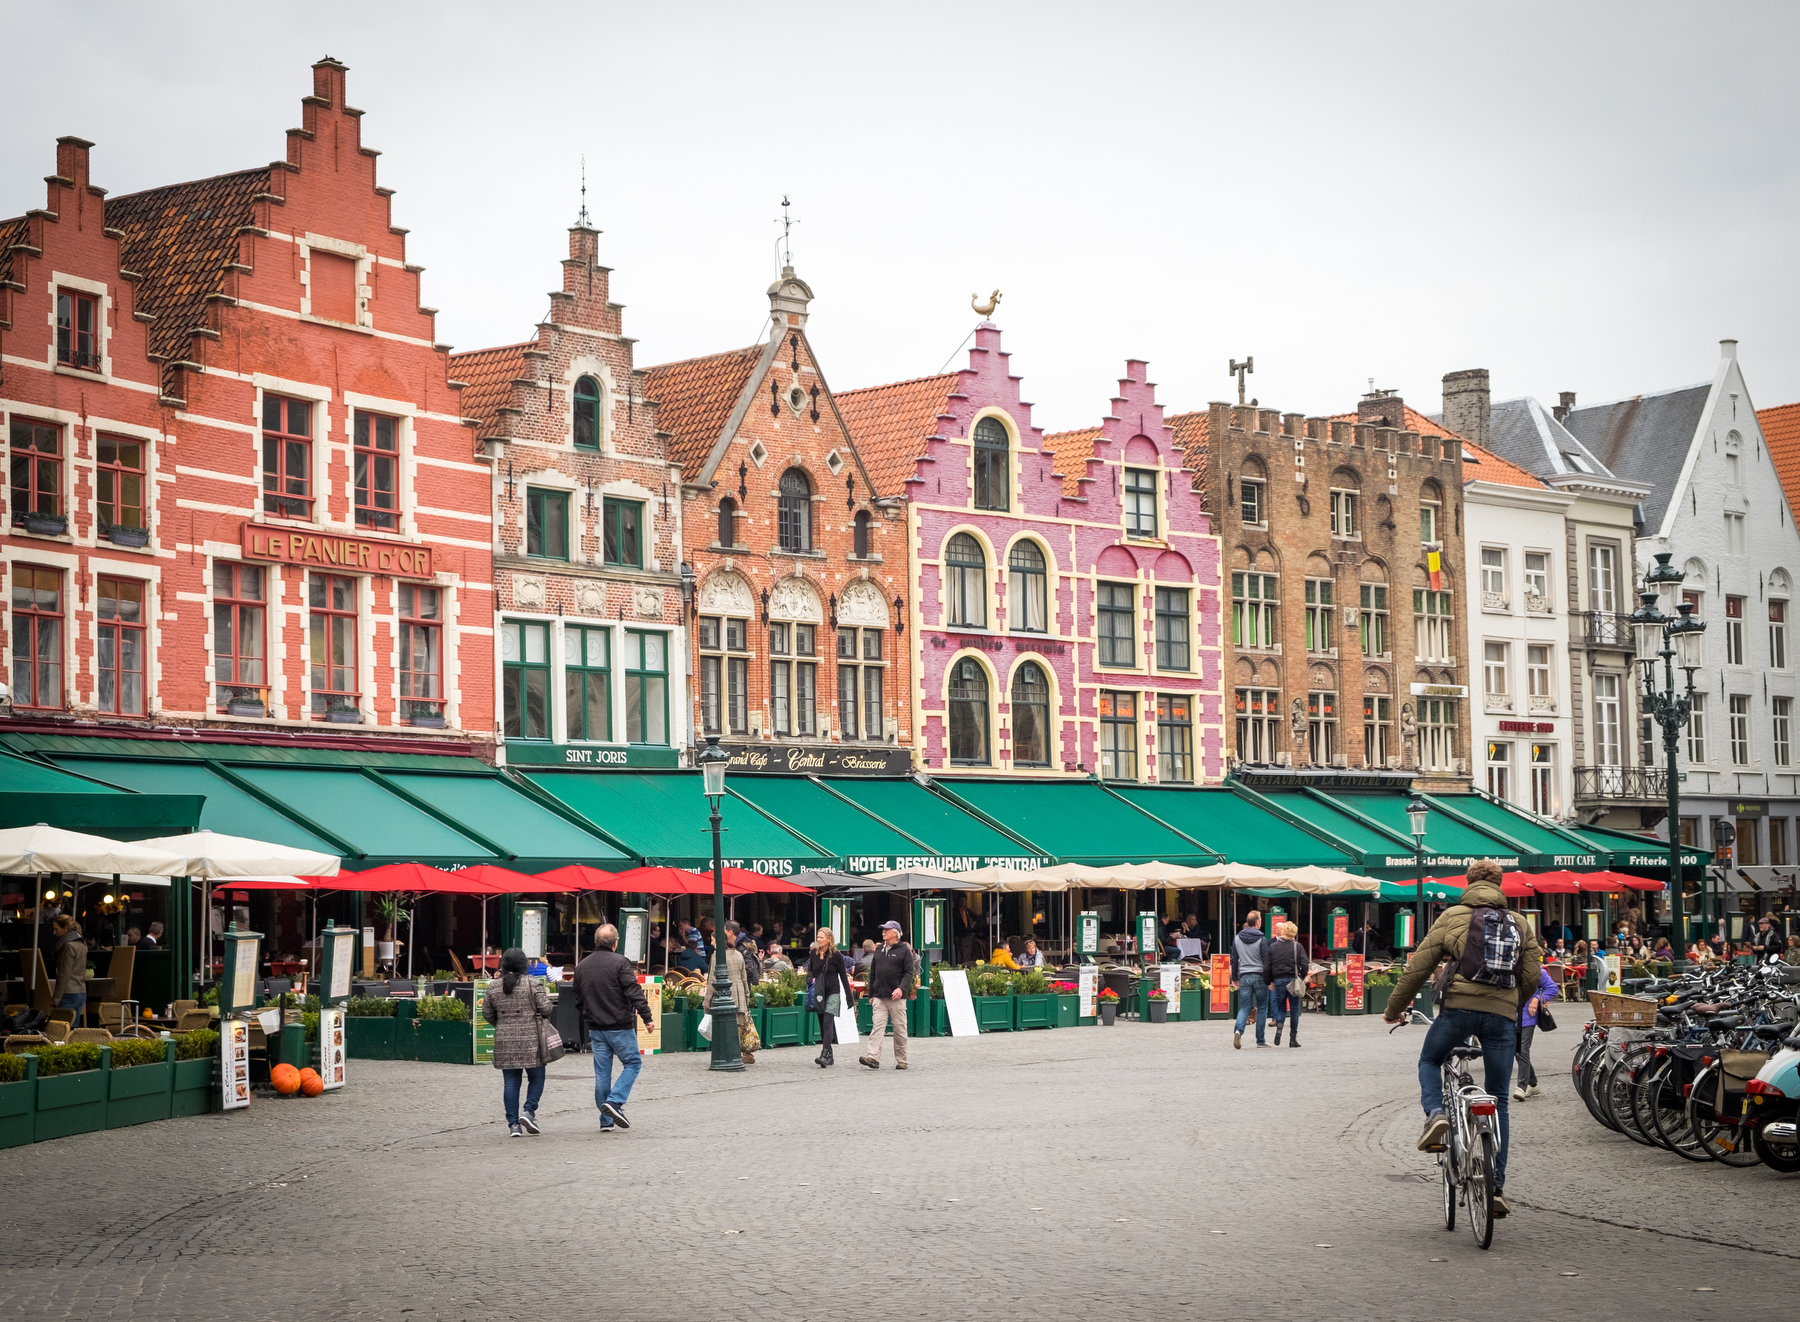 The main plaza In Bruges.